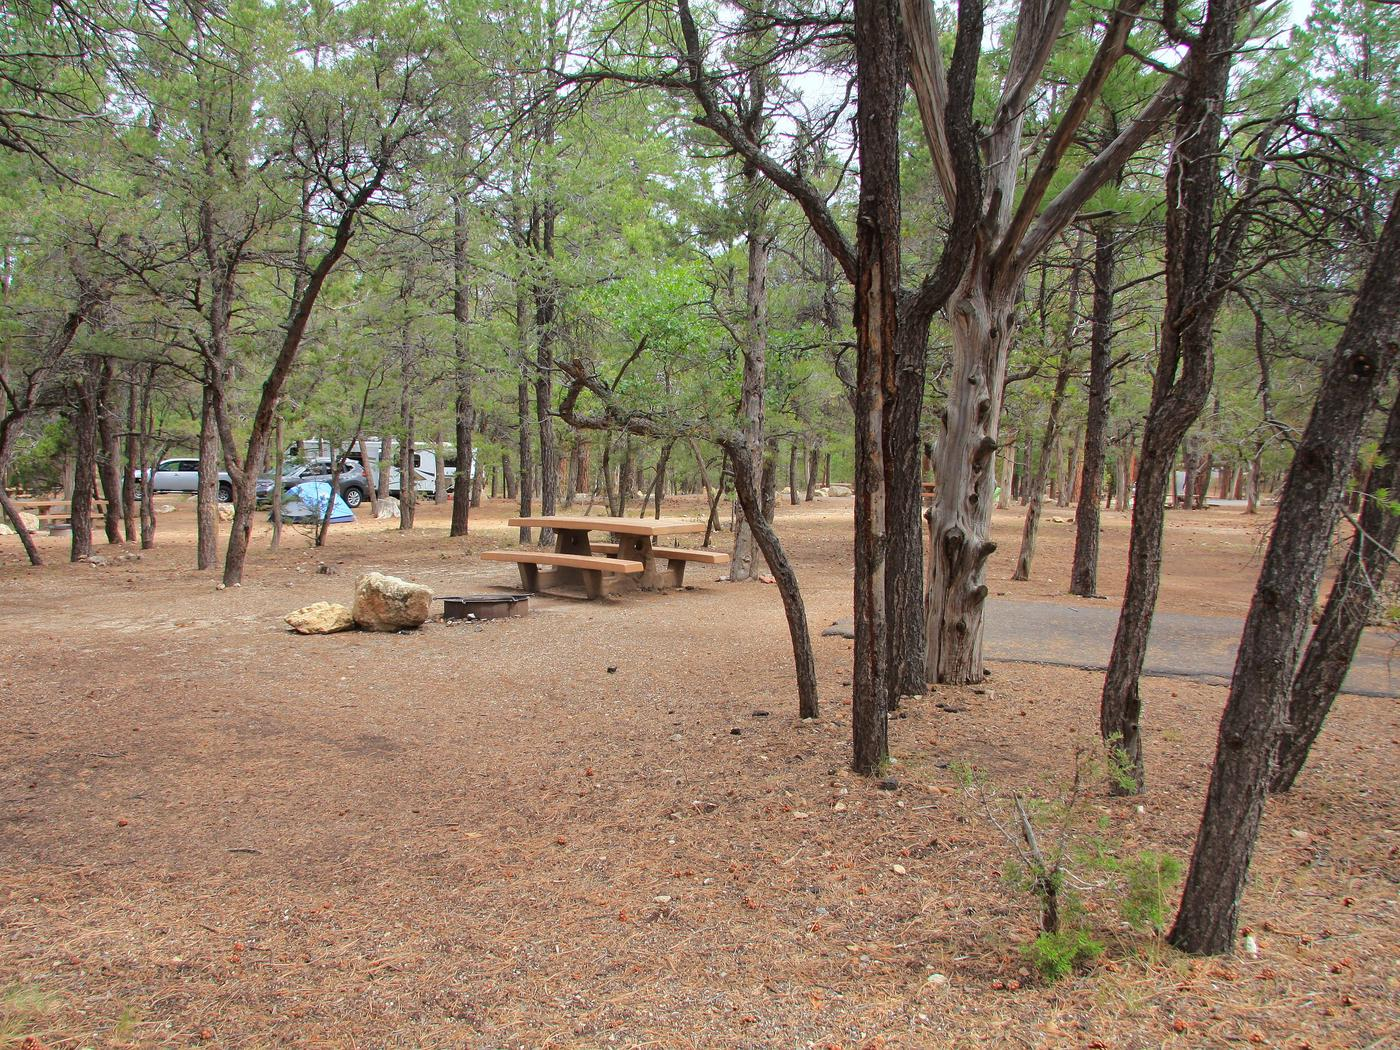 Picnic table, fire pit, and parking spot, Mather CampgroundThe picnic table, fire pit, and parking spot for Aspen Loop 48, Mather Campground